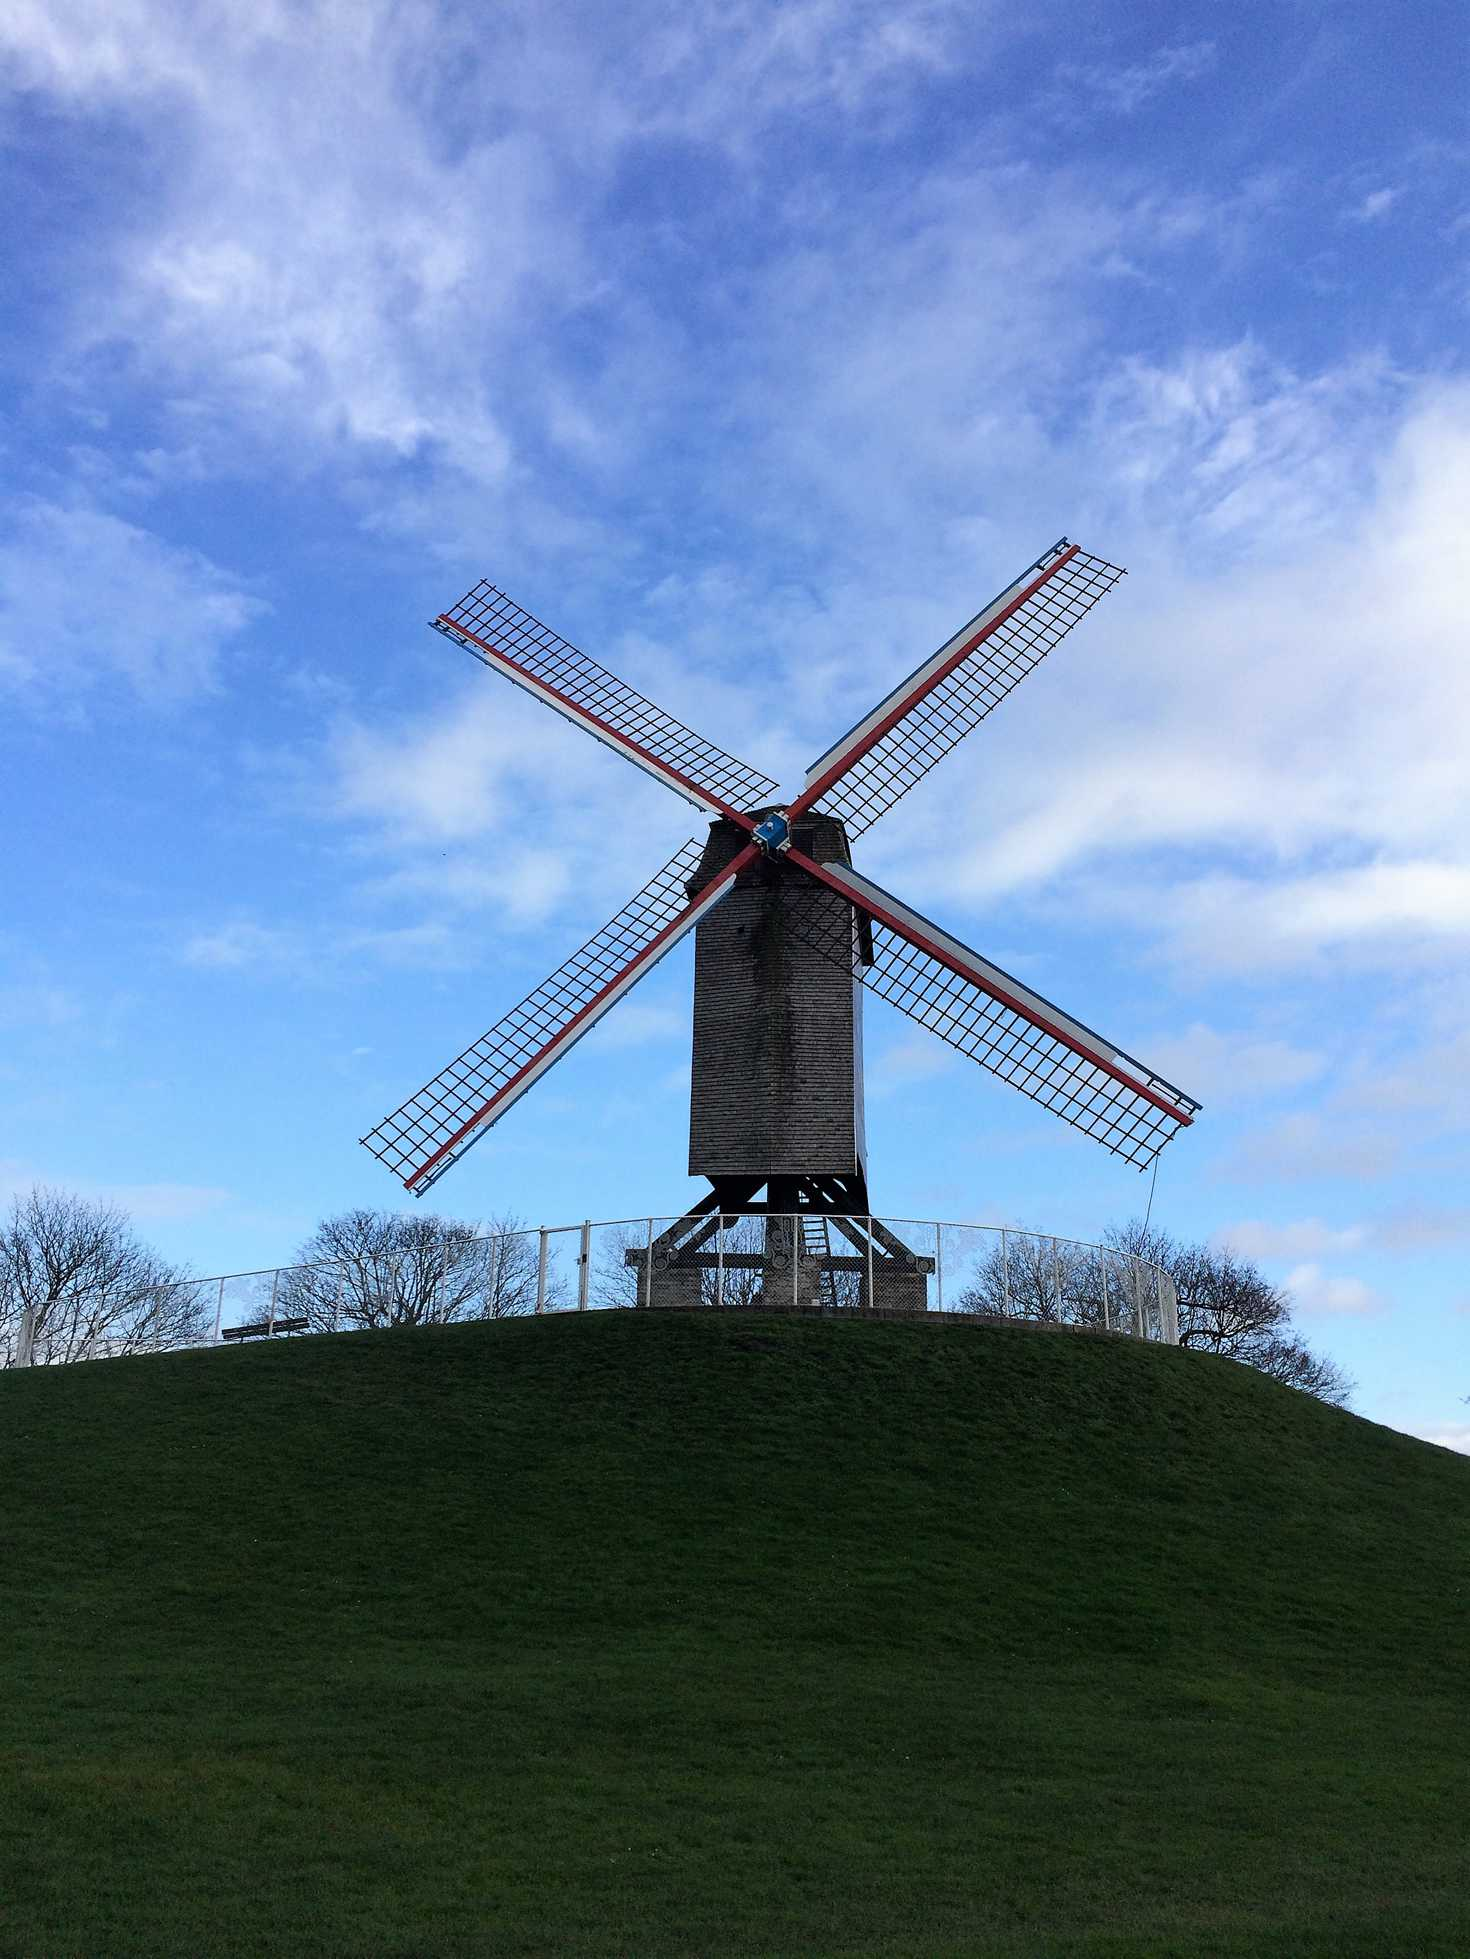 A picture of a windmill with a blue sky and green grass in Bruges, Belgium.